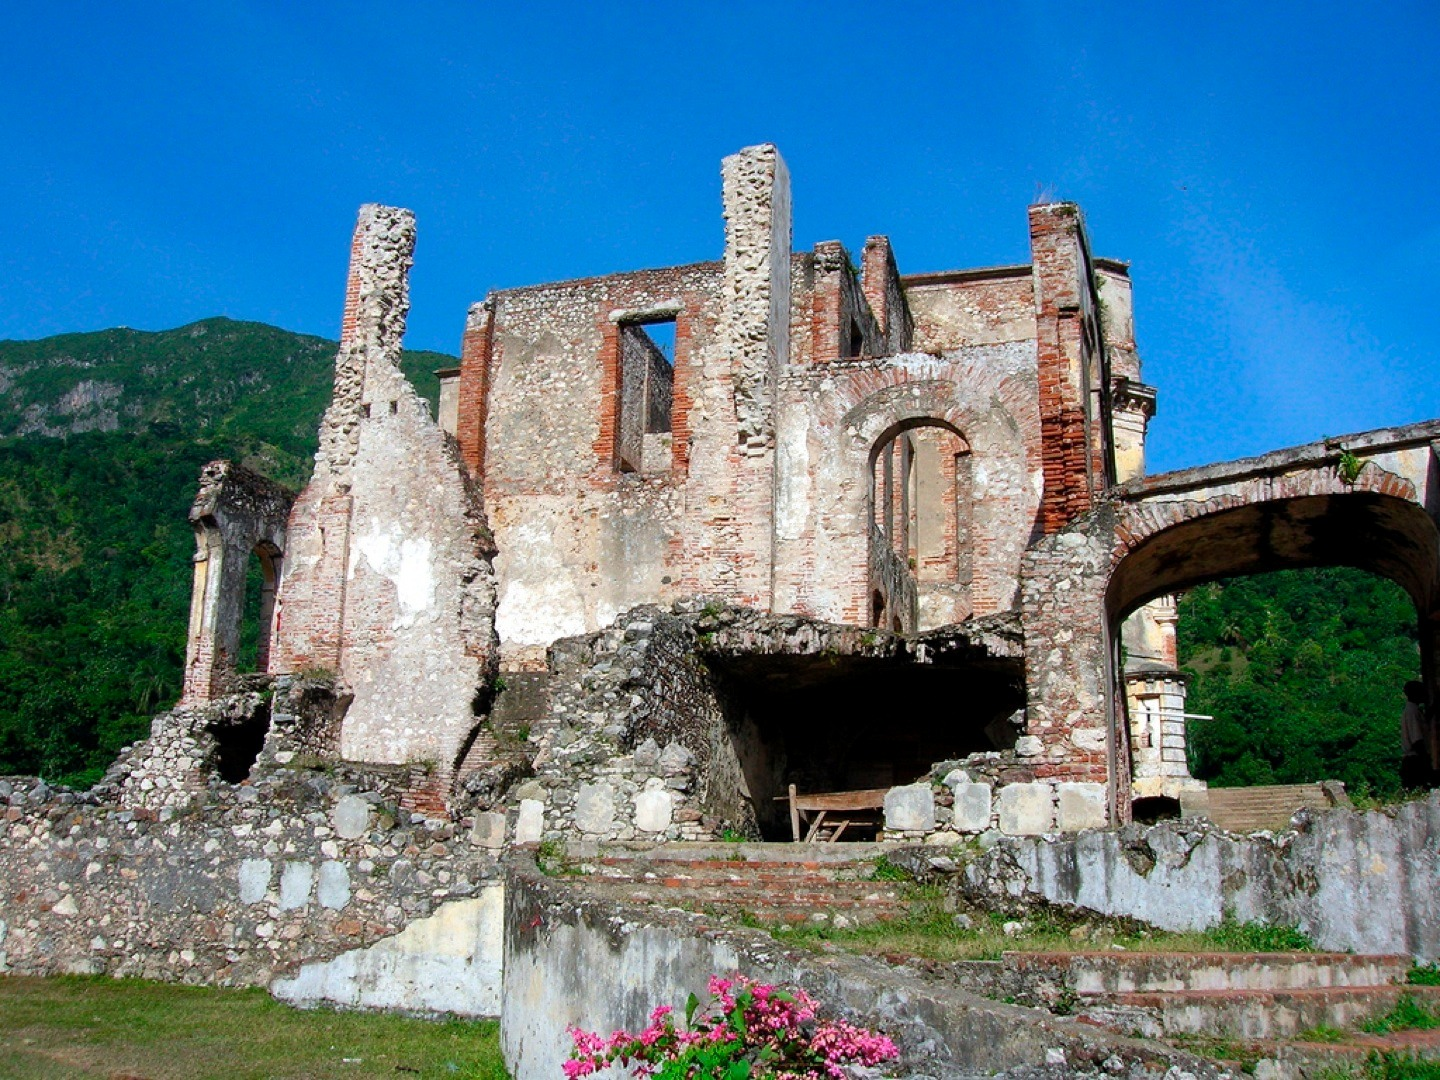 Exploring the under visited ruins of Palais de Sans Souci is just one of the top reasons to visit Haiti!